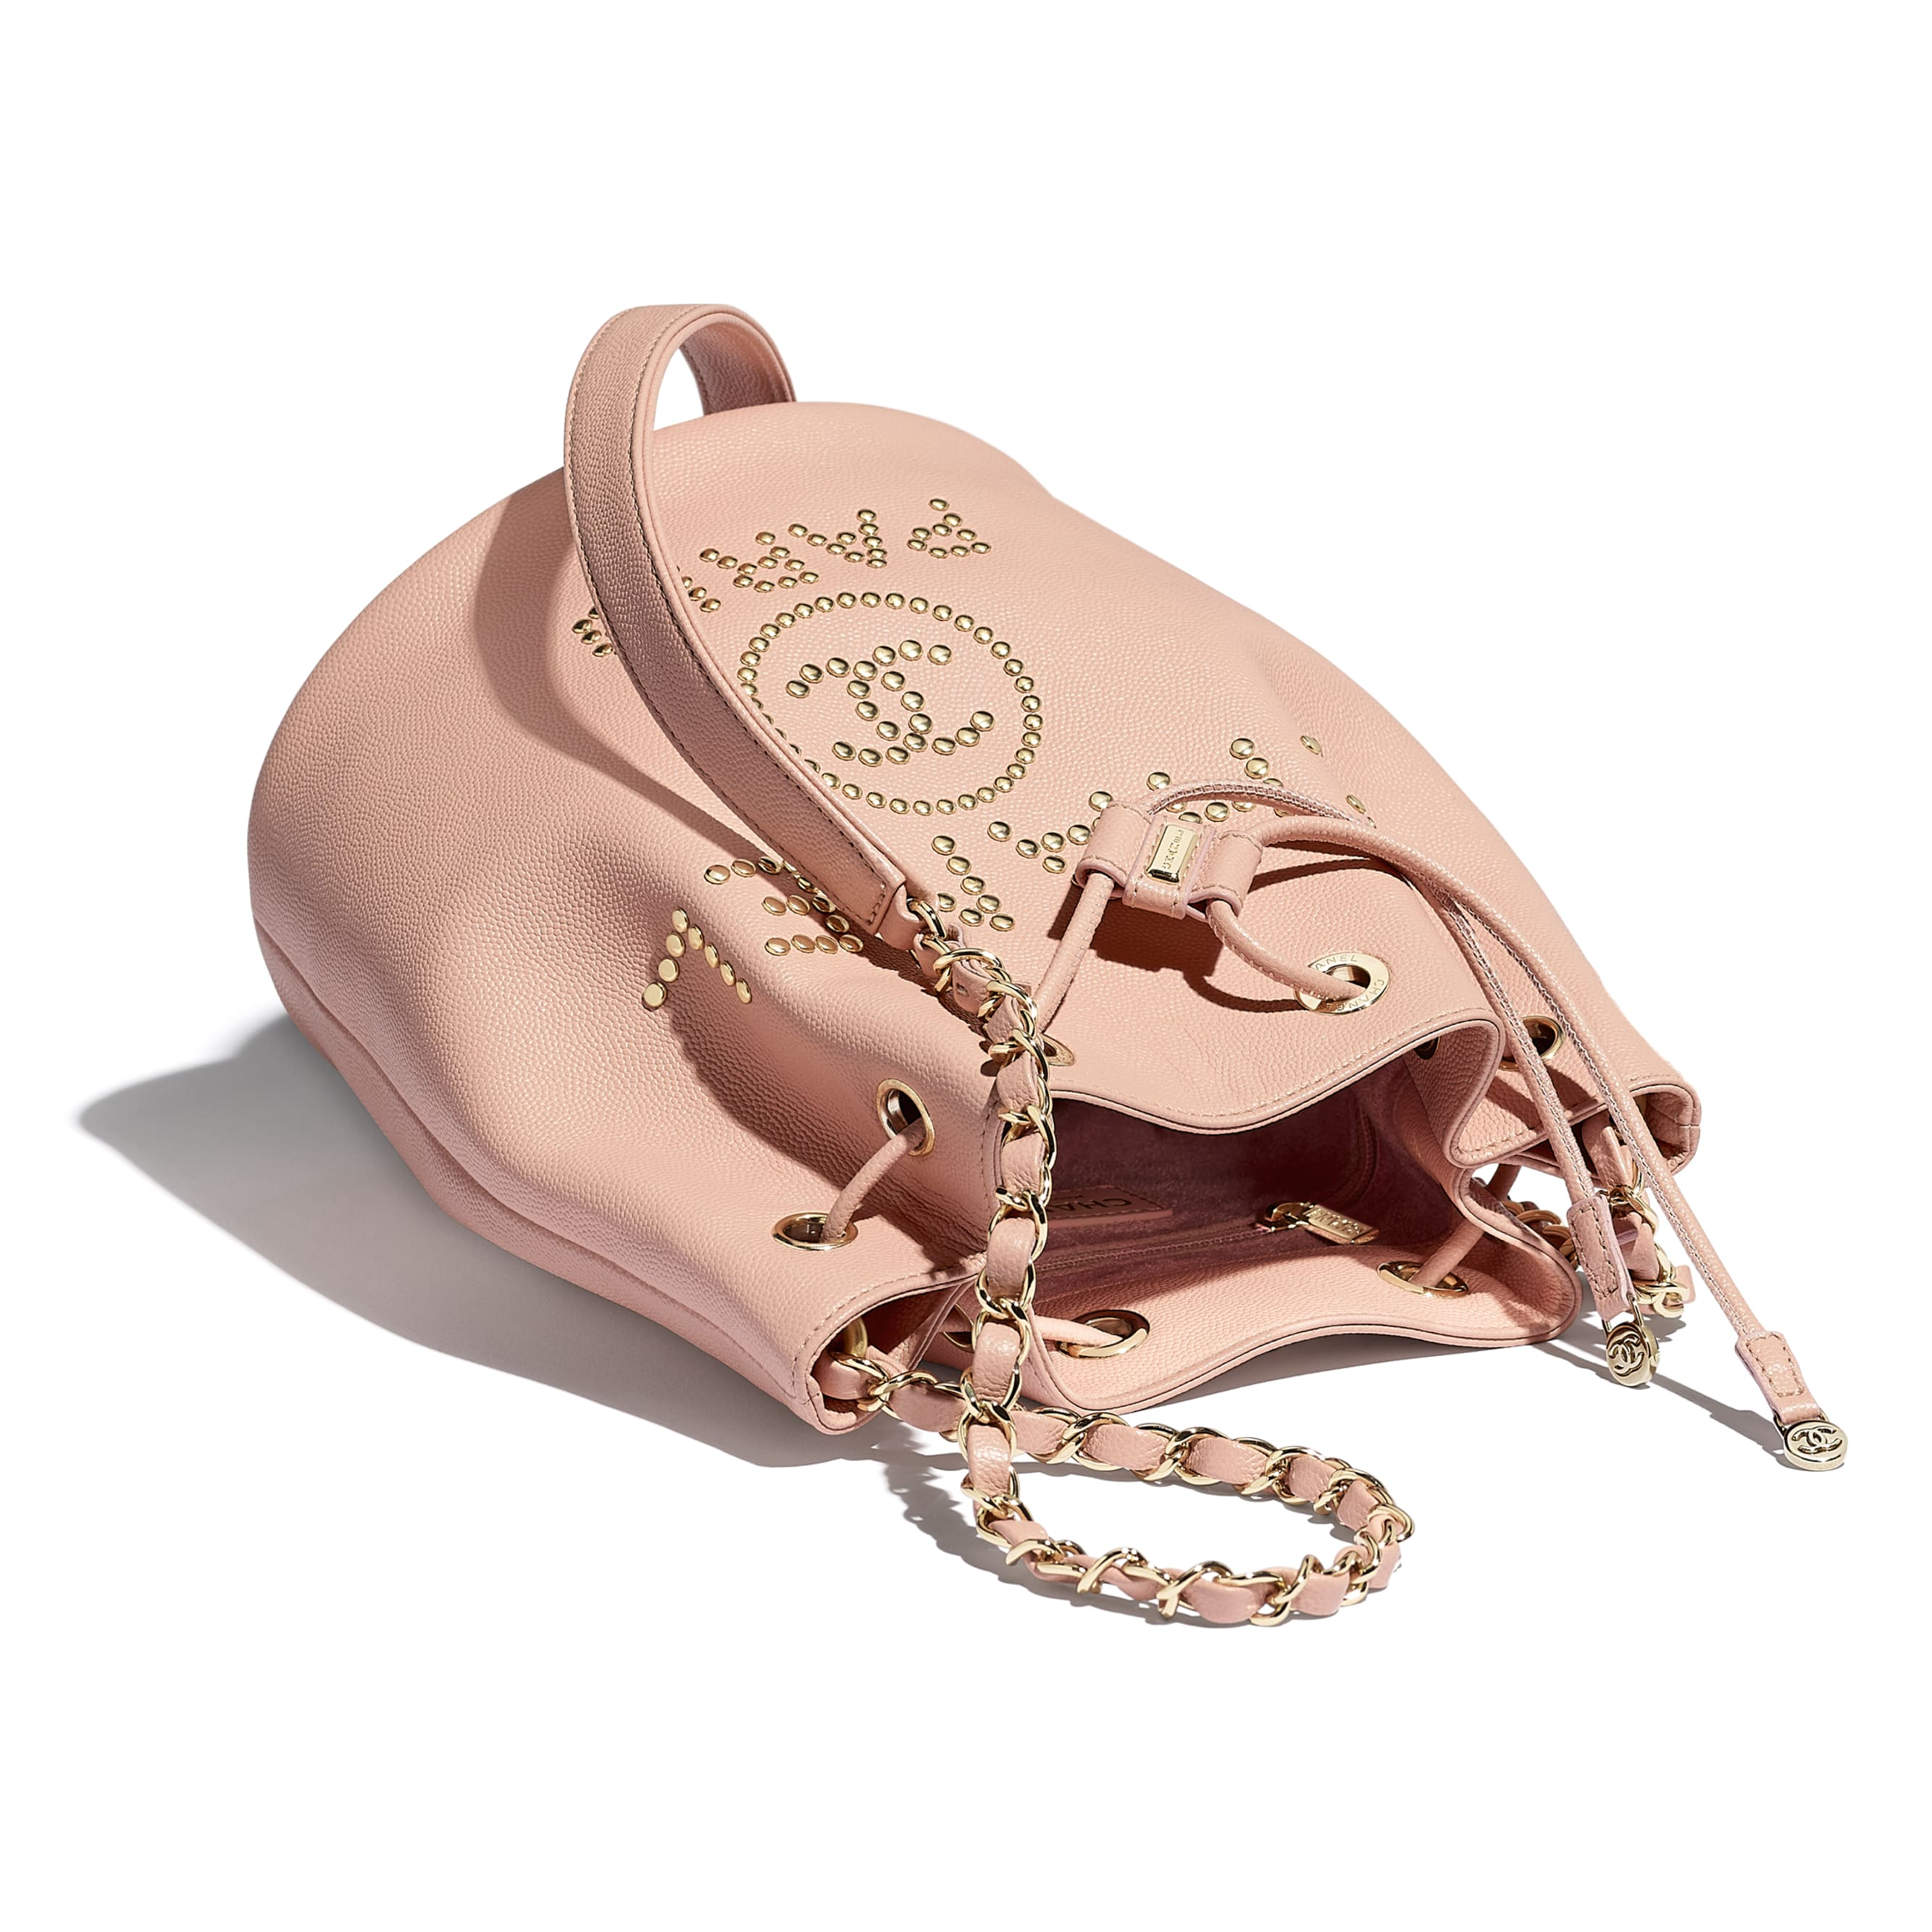 Small Drawstring Bag - Light Pink - Grained Calfskin, Studs & Gold-Tone Metal - Other view - see standard sized version